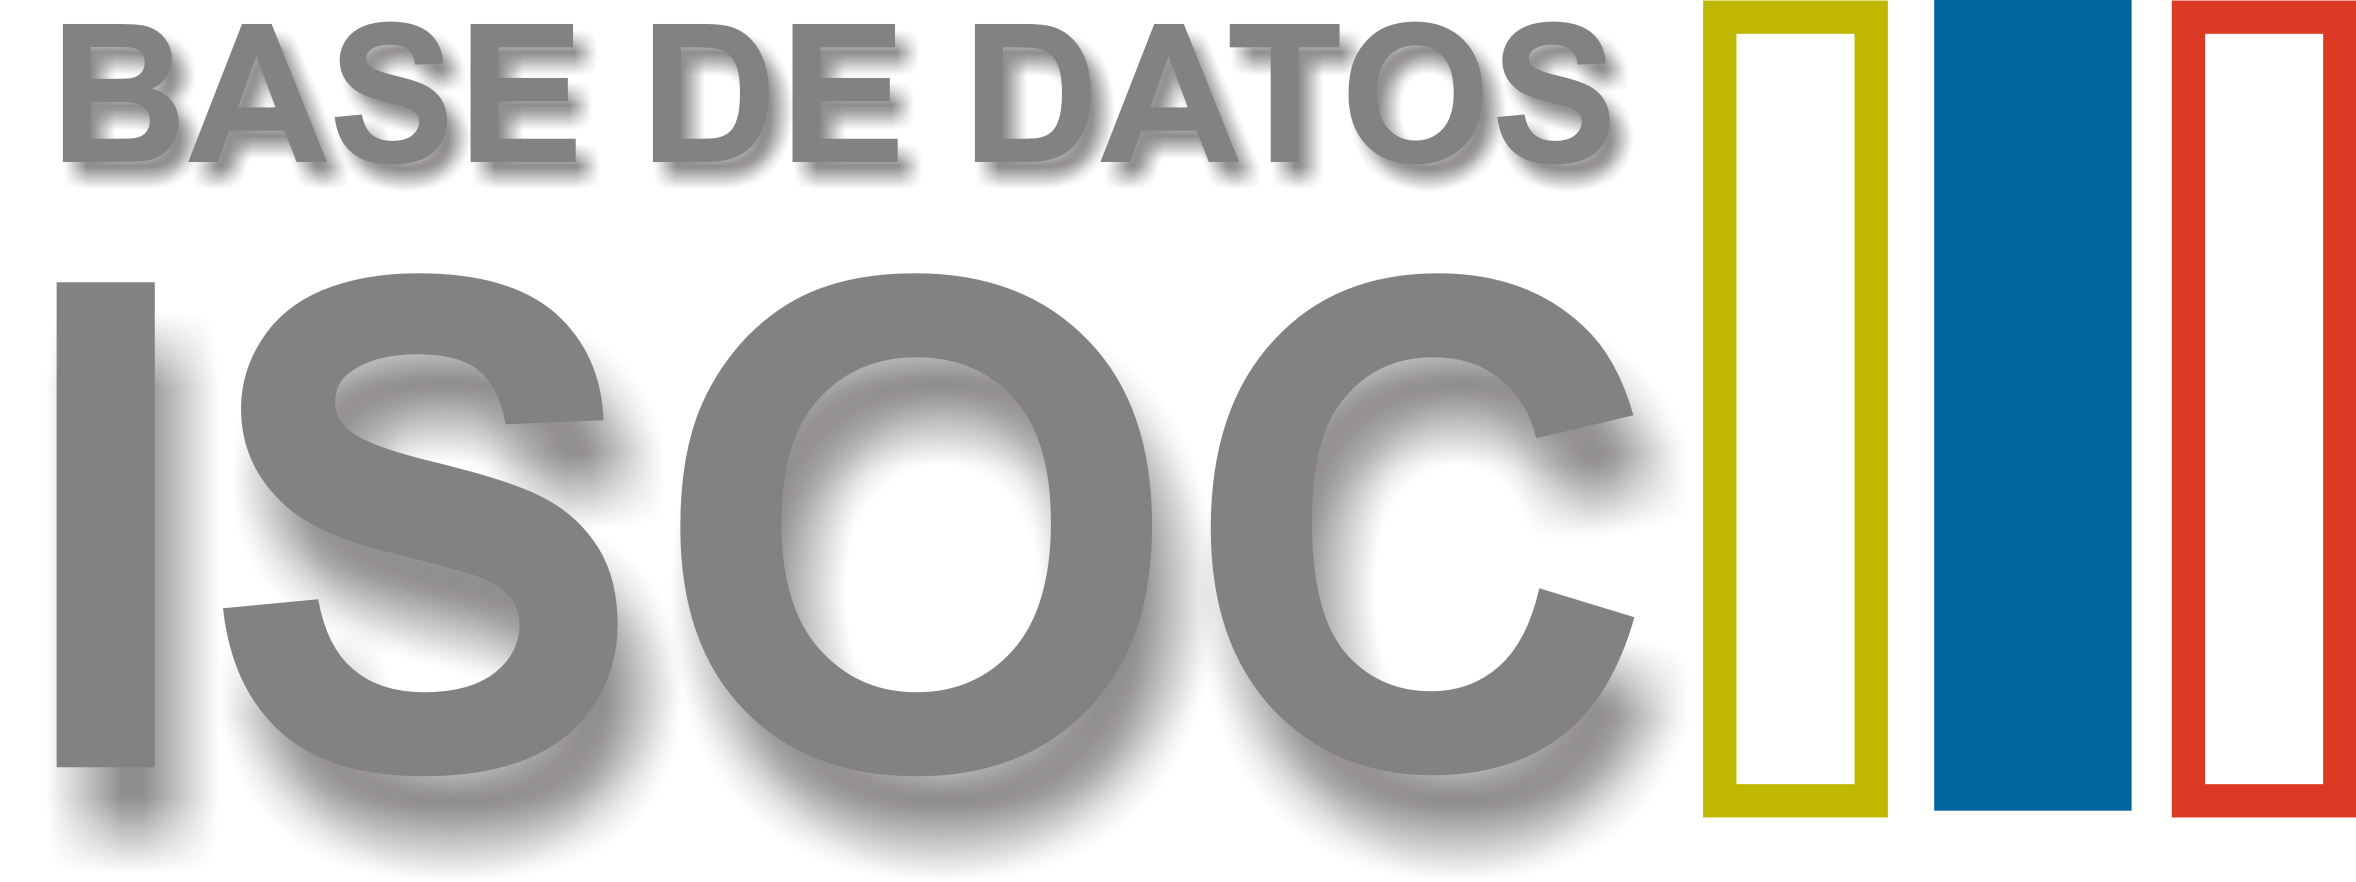 Base de datos                         ISOC